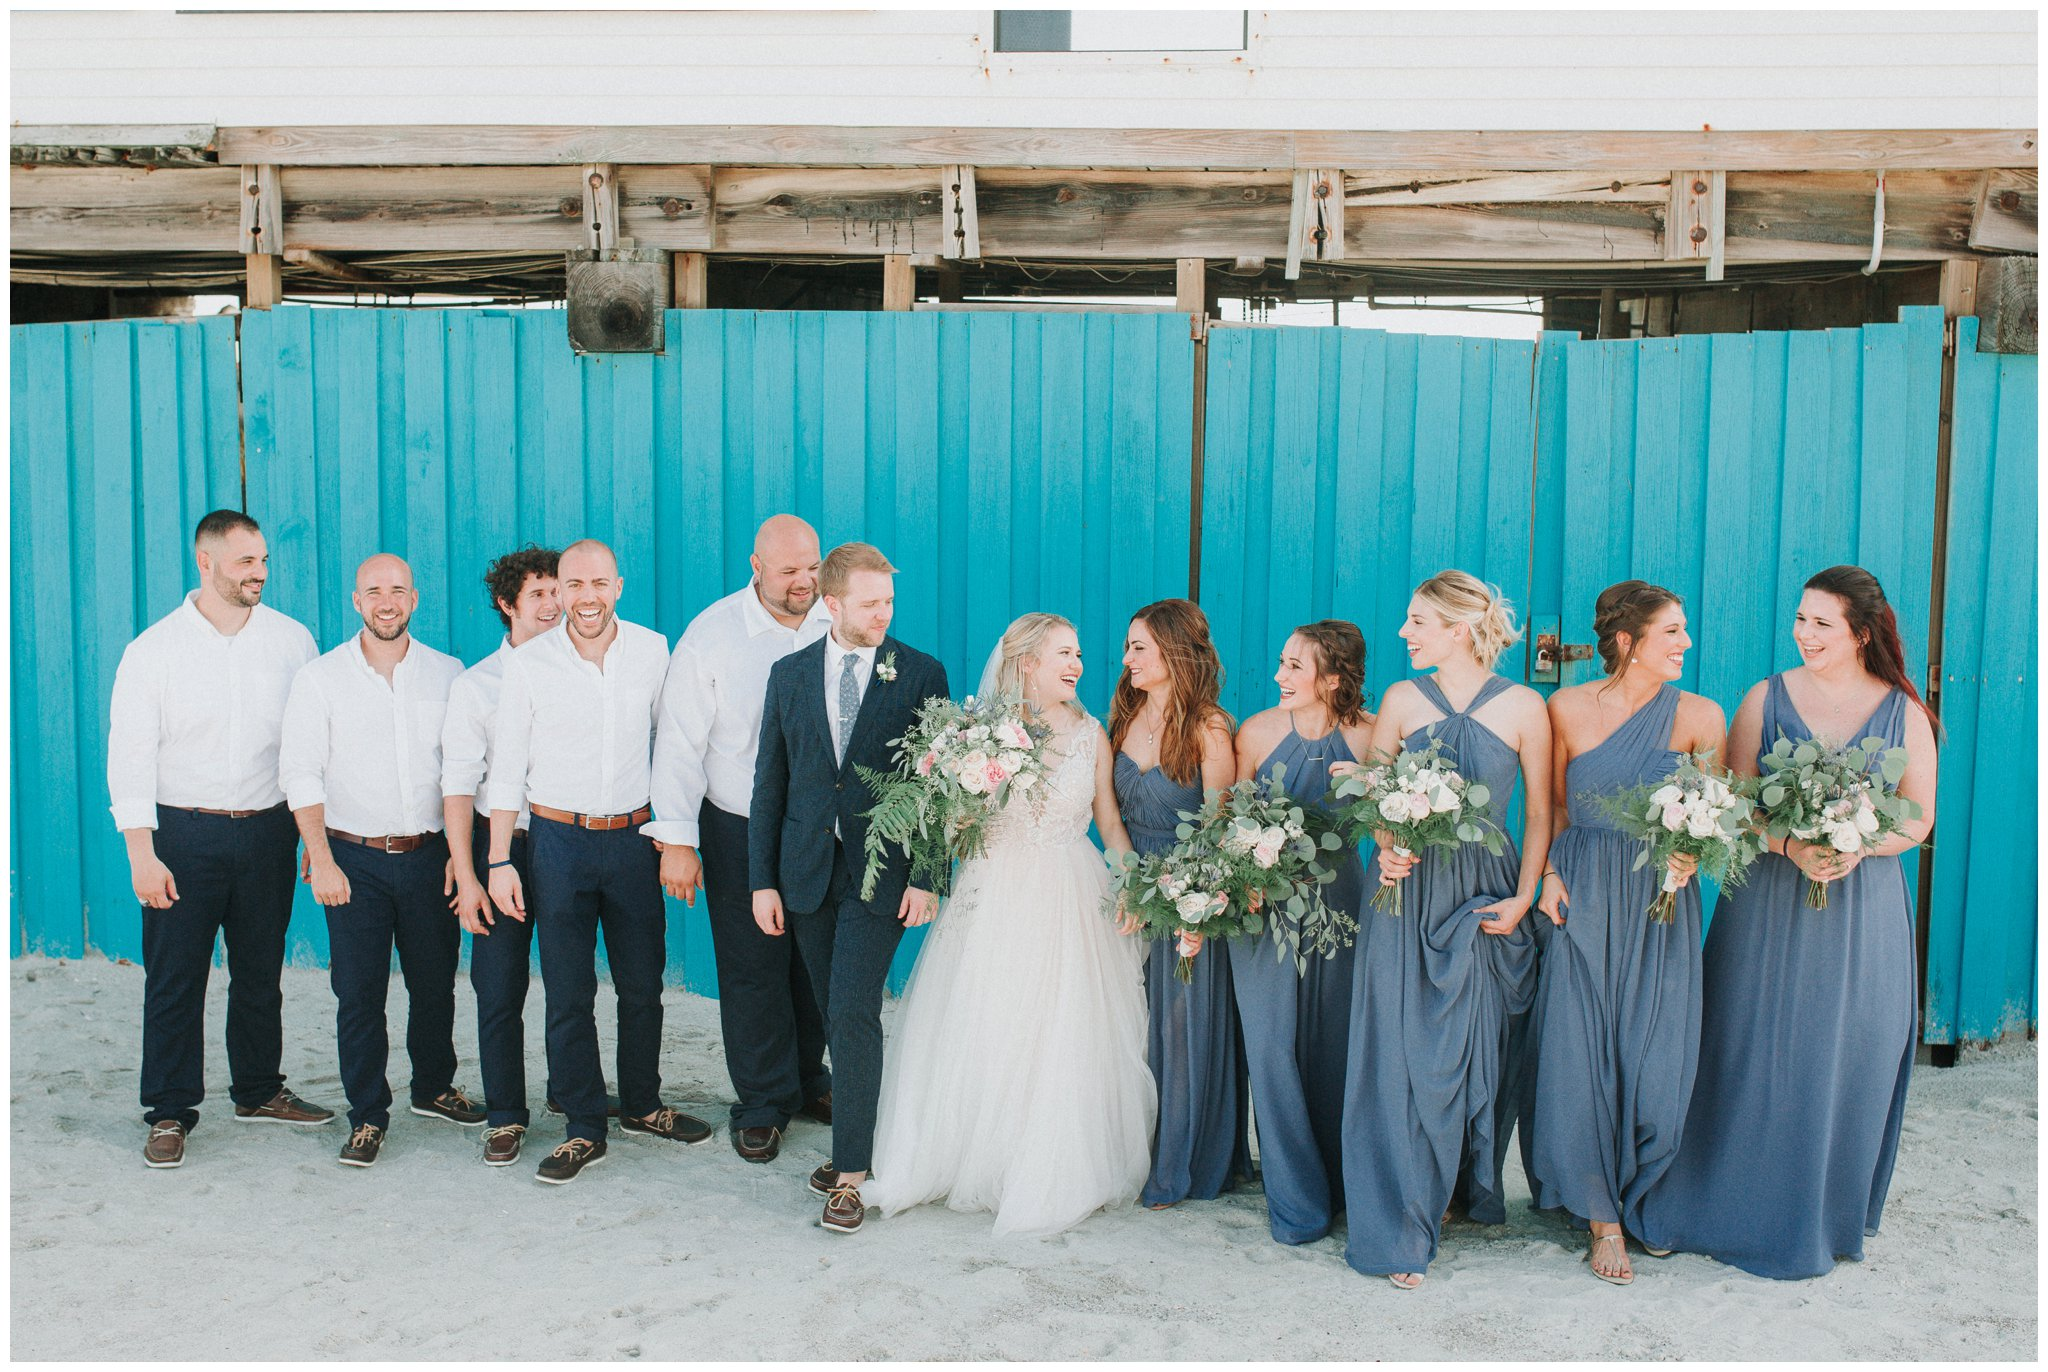 kaley and kevin-coco beach pier wedding-kimberly smith photography_0048.jpg